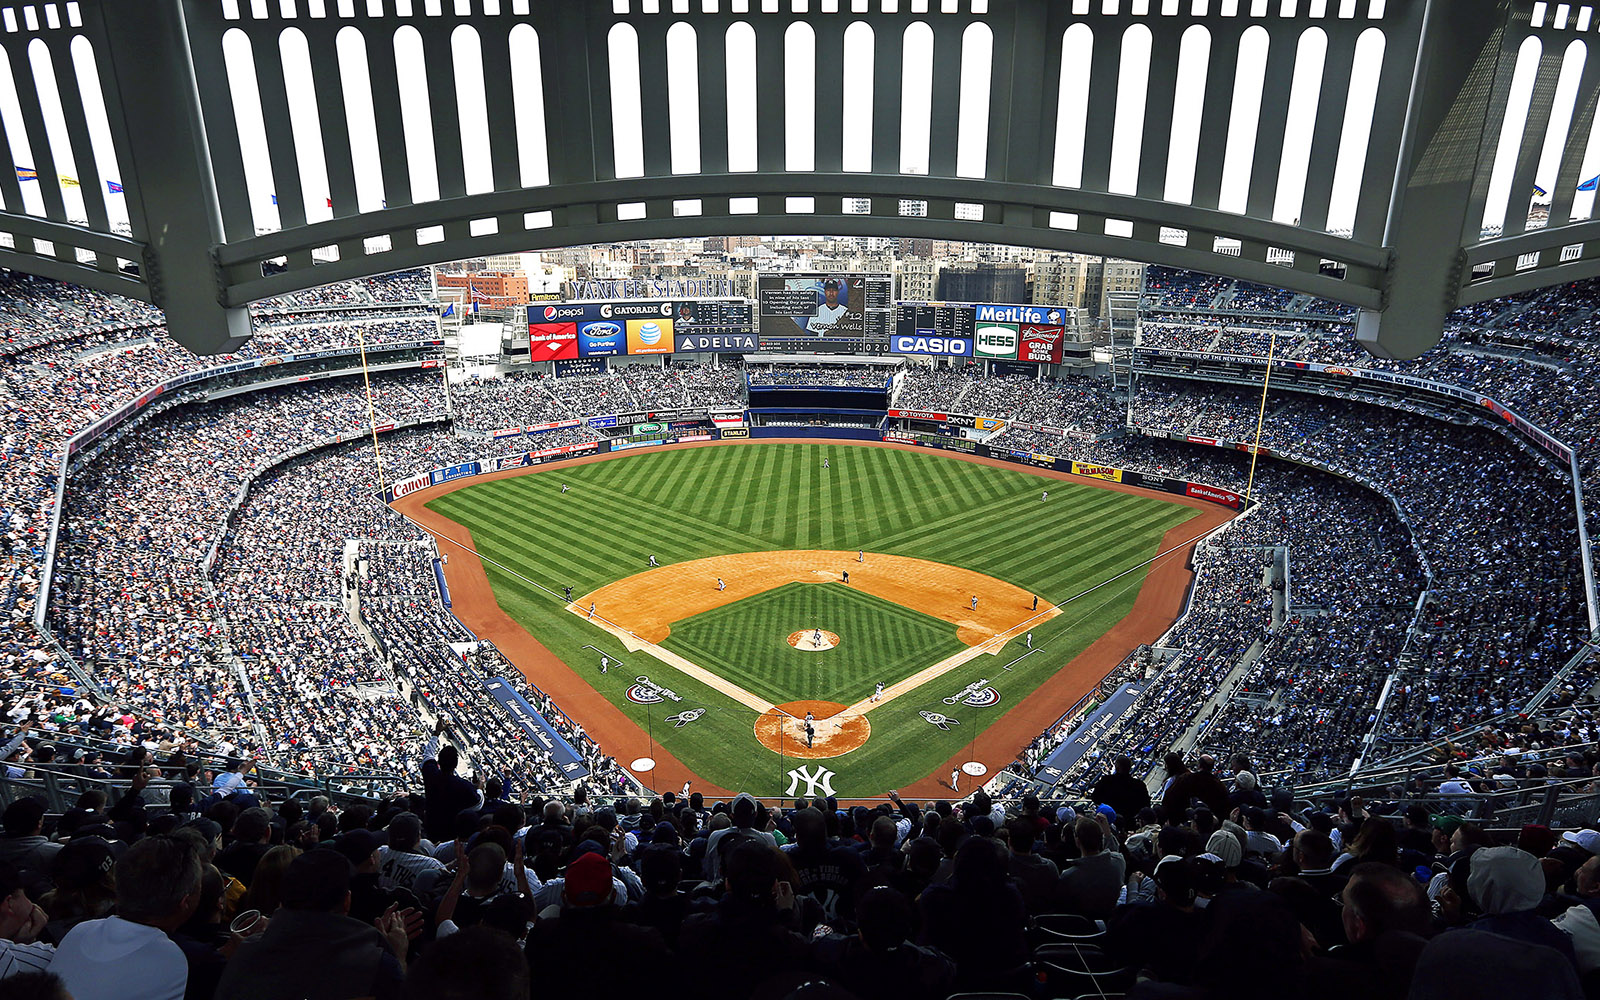 yankee stadium Baseball almanac researches yankee stadium and provides every bit of statistical ballpark information possible.